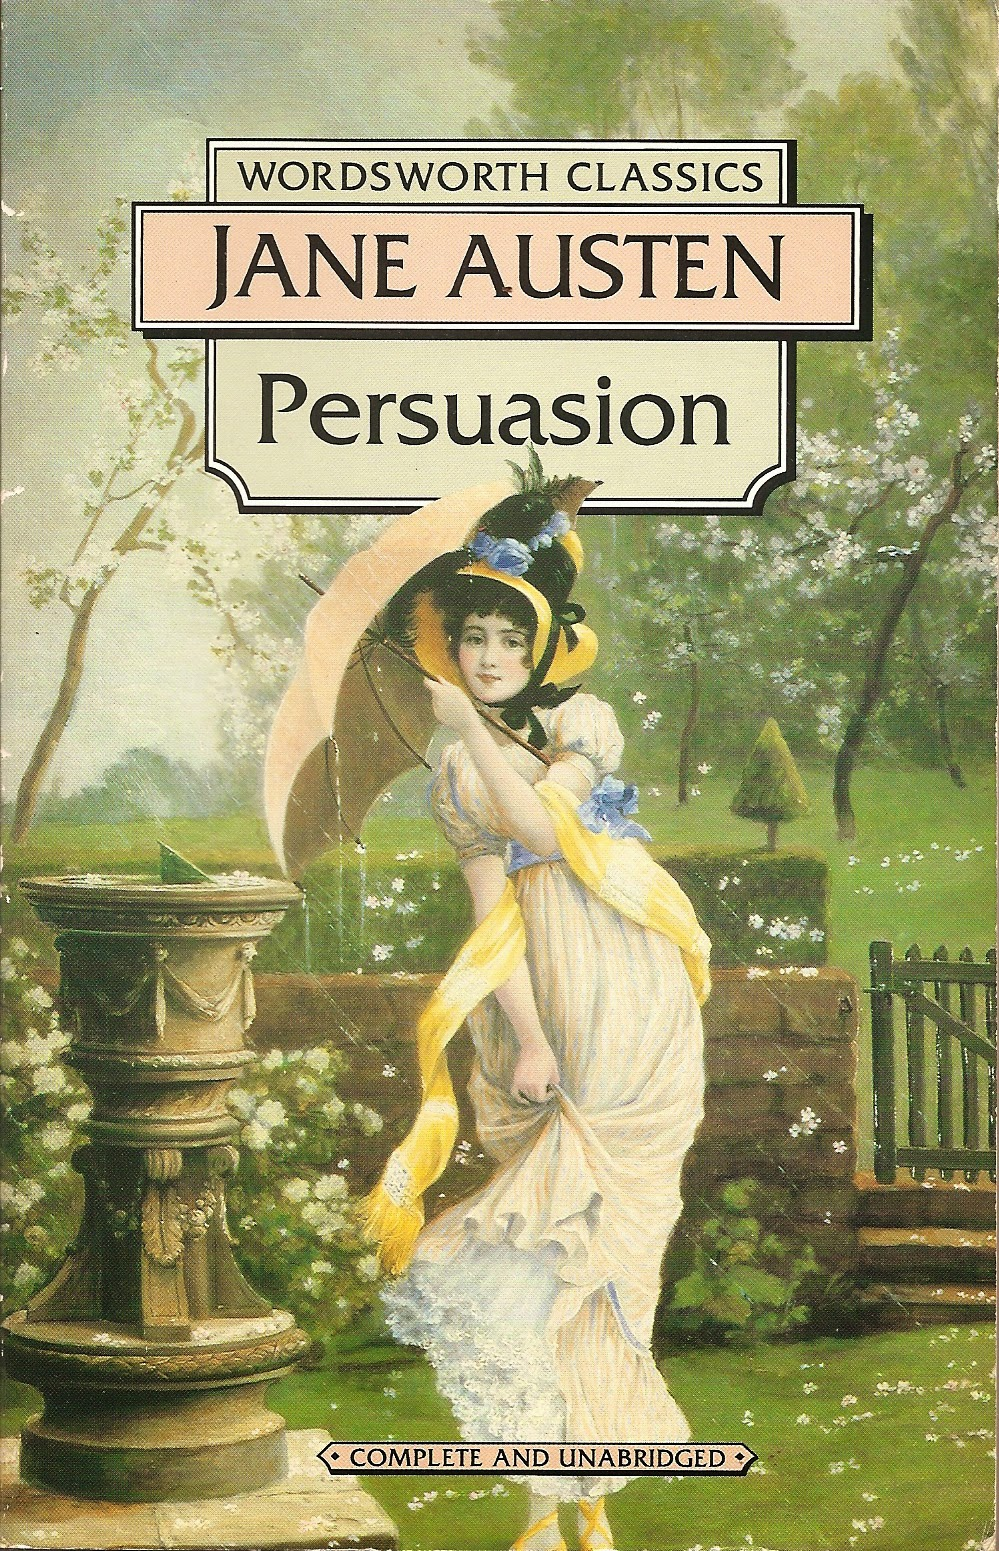 jane austen persuasion Introduction persuasion by jane austen is a novel rich in intrigue and romance although austen's focus seems to be the manners and morals of the time, this concern is embedded in the tentative relationship between anne elliot and captain frederick.